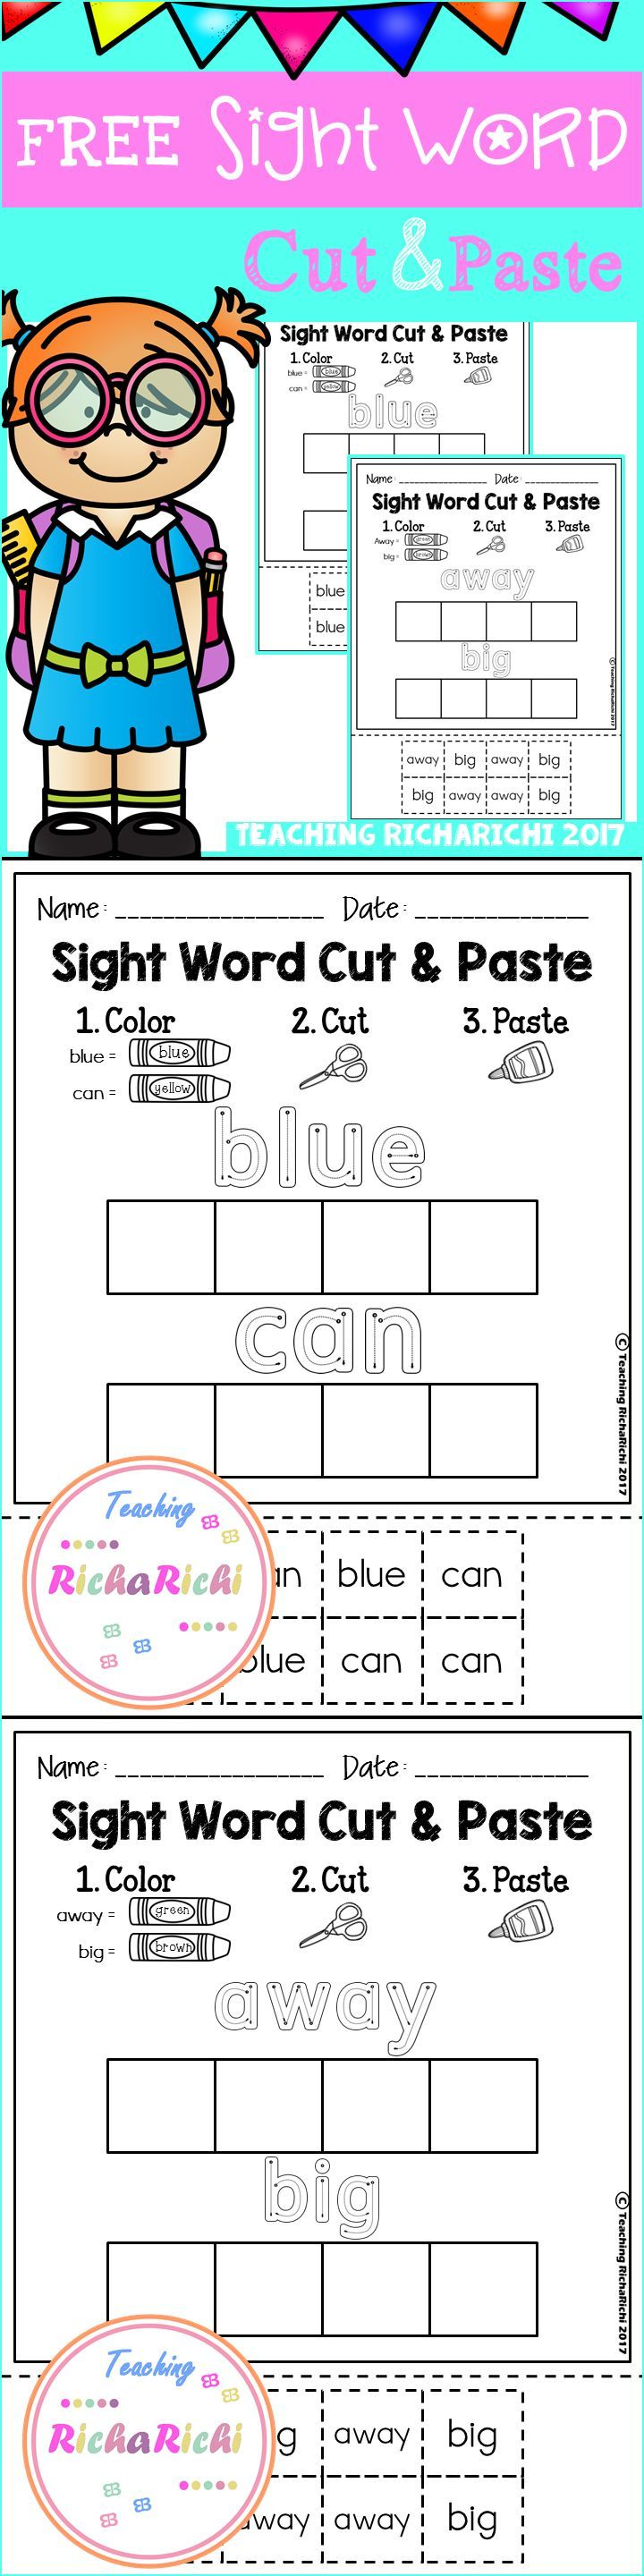 worksheet First Grade Sight Word Worksheets best 25 first grade sight words ideas on pinterest kindergarten free activities pre k 1st s